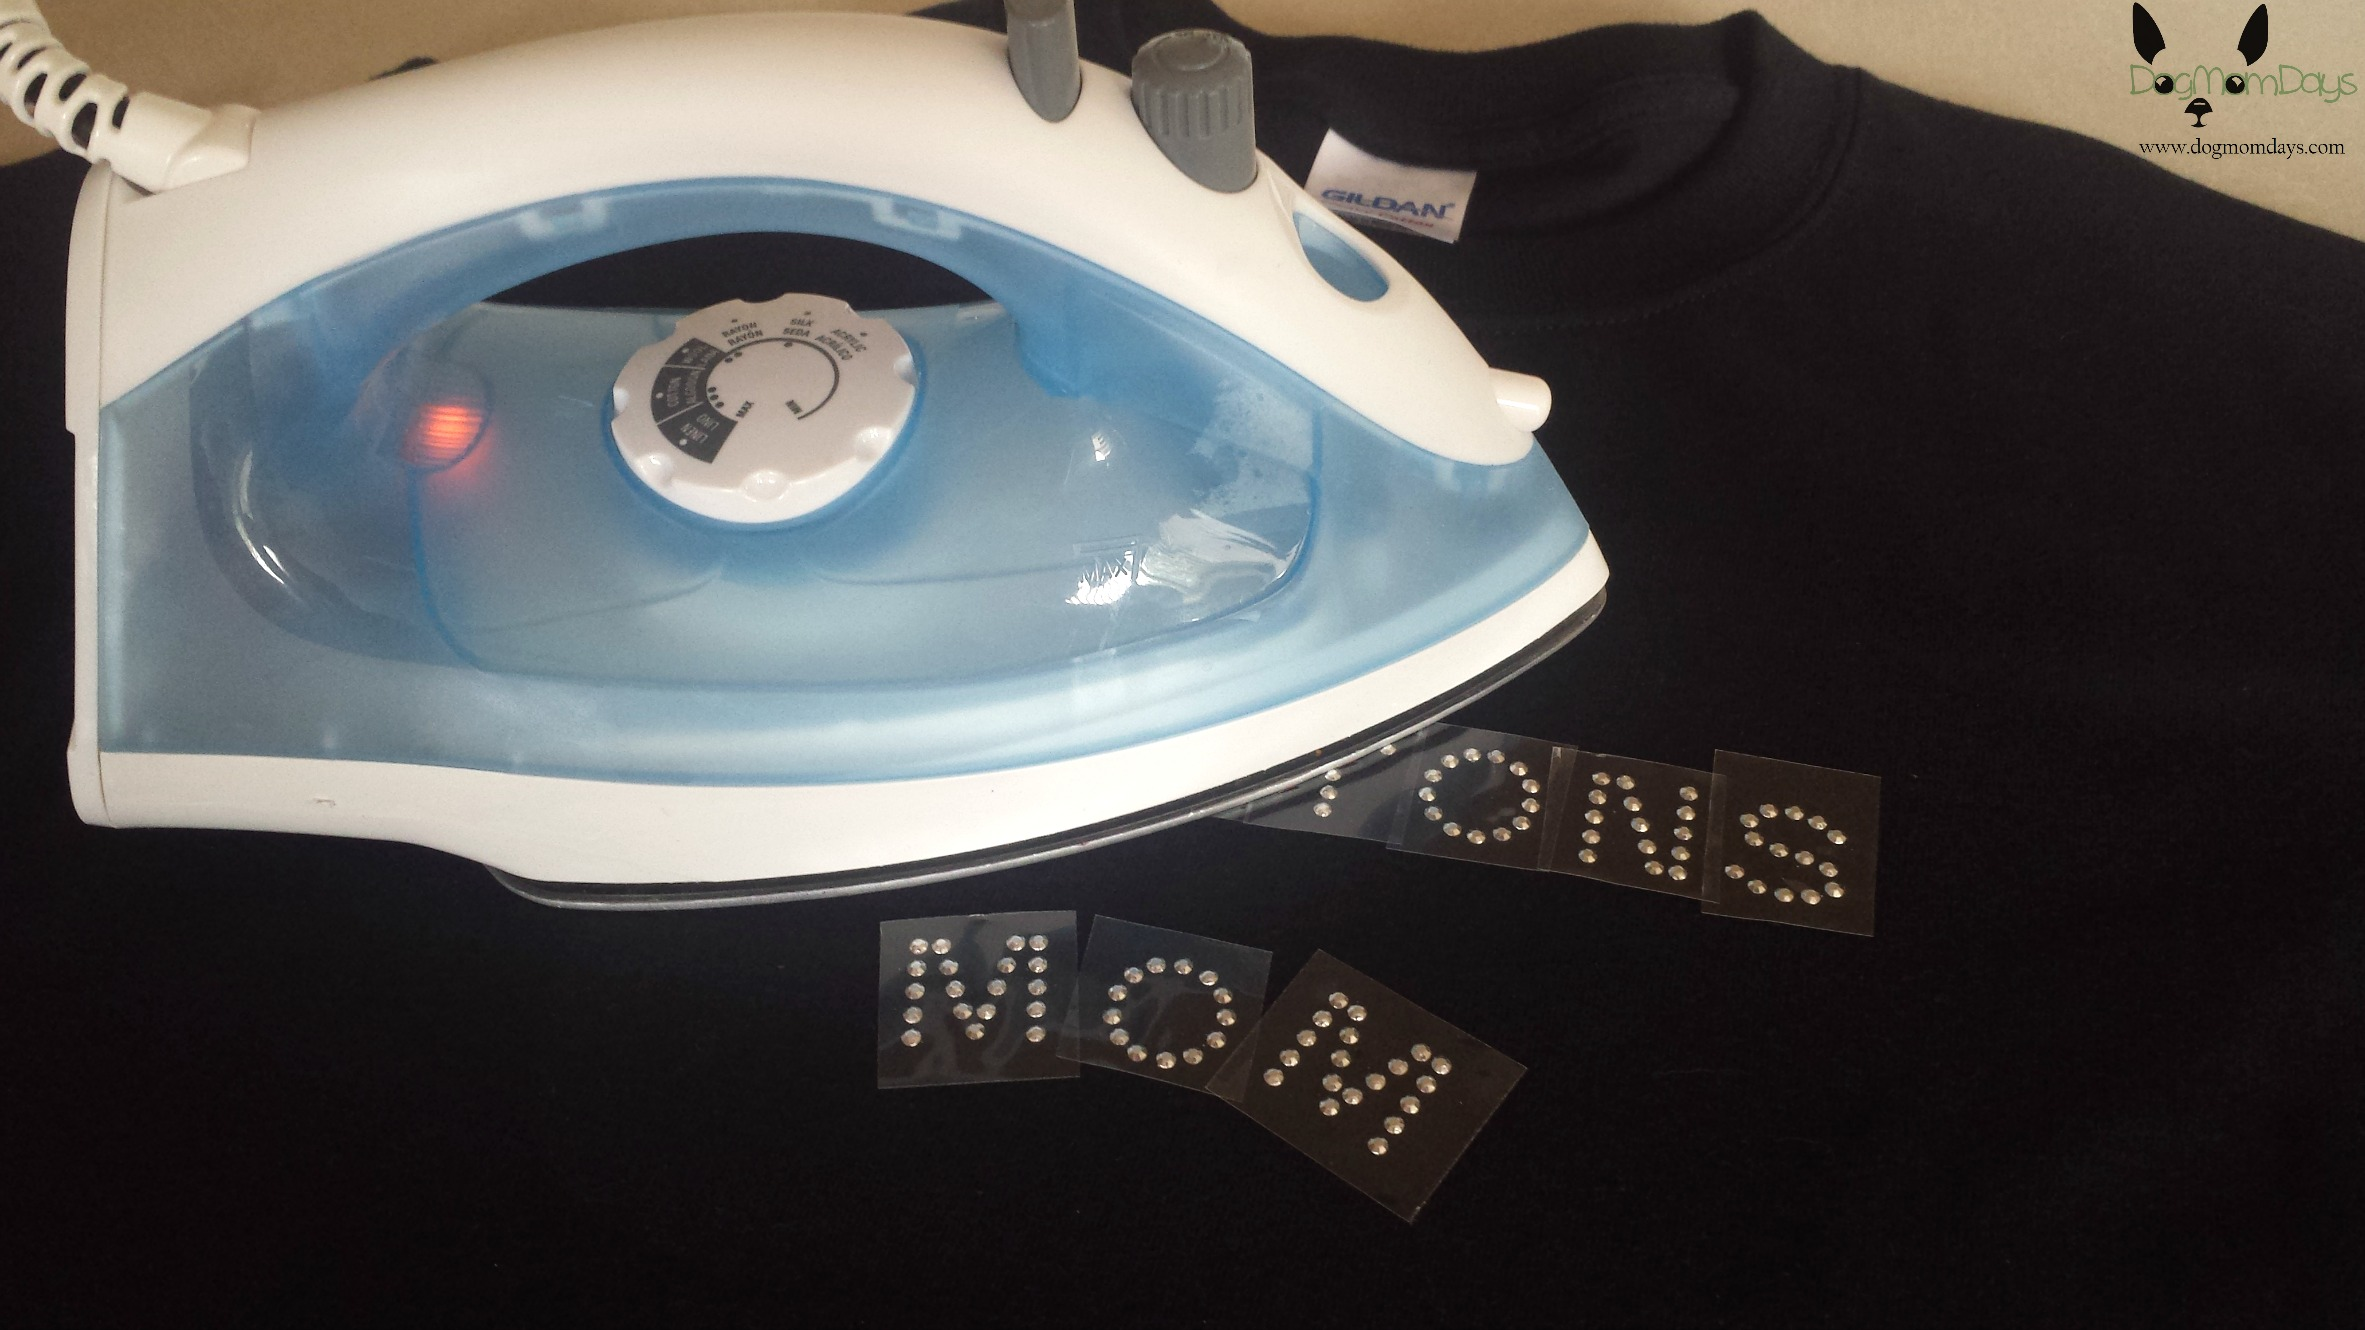 Ironing on the letters.